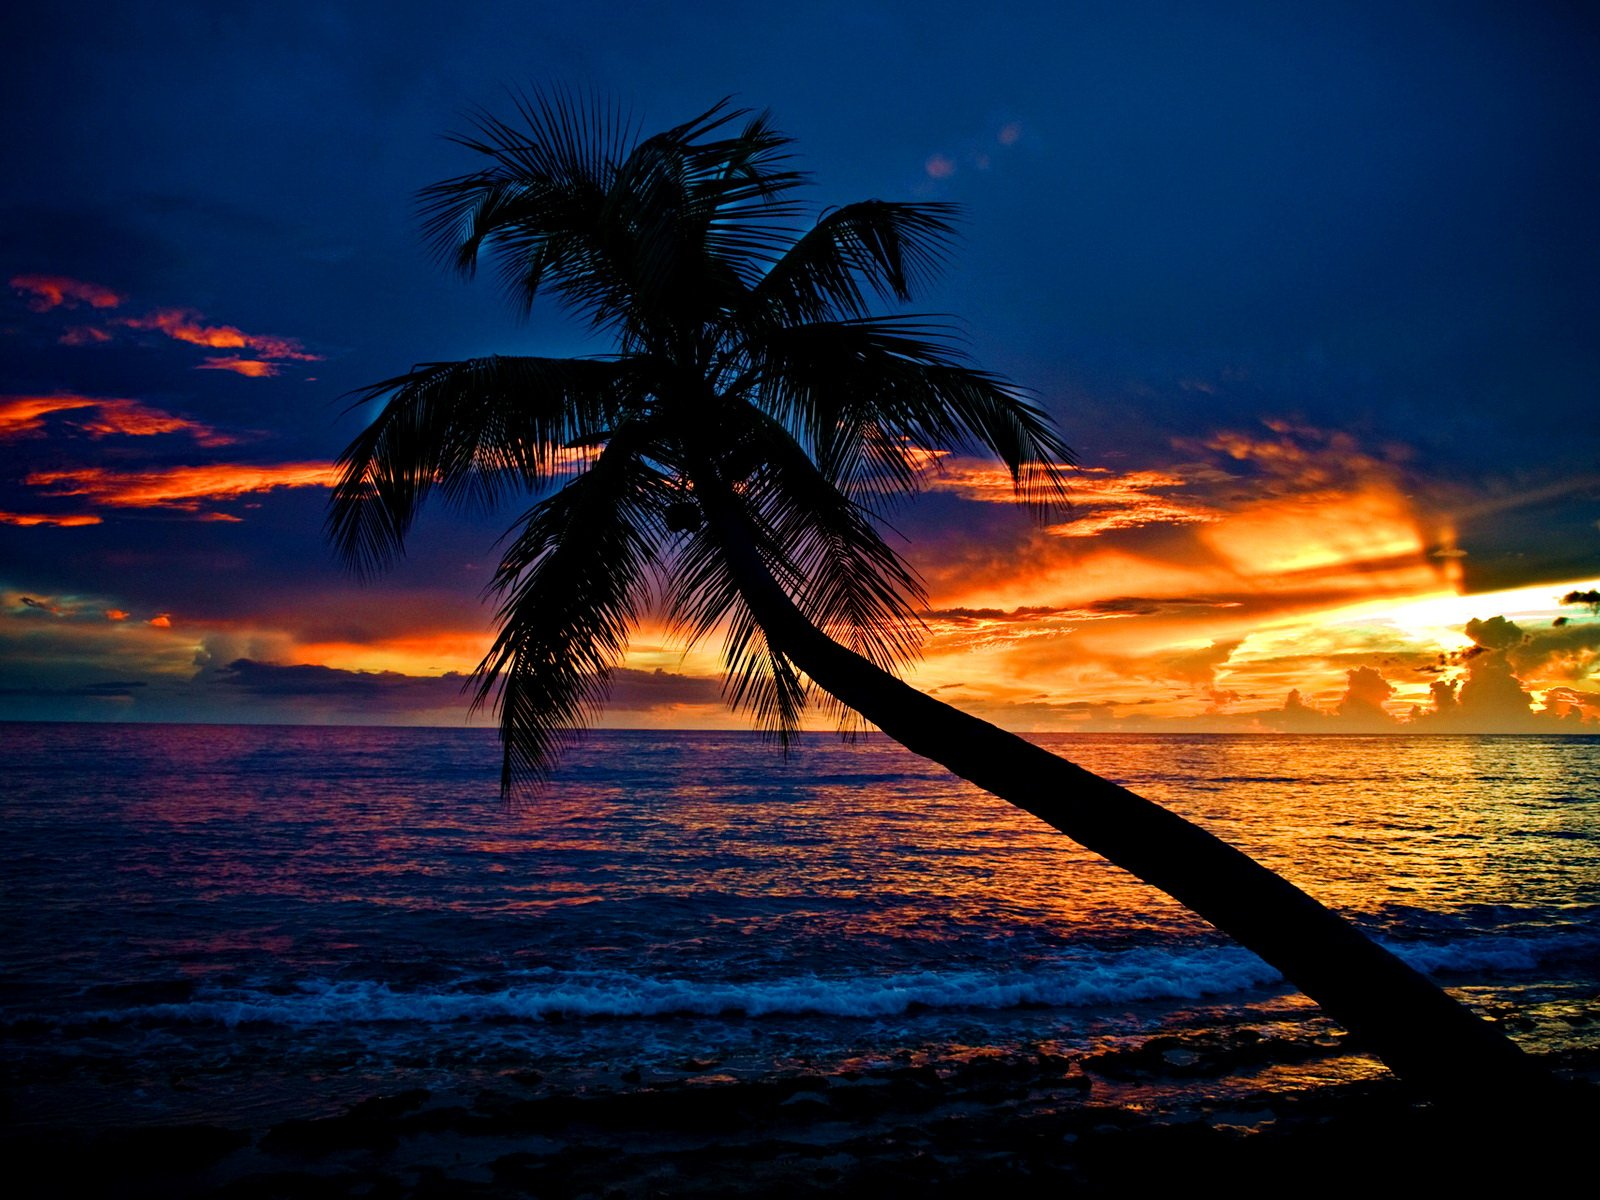 39 tropical beach sunset wallpaper desktop on - Desktop wallpaper 1600x1200 ...